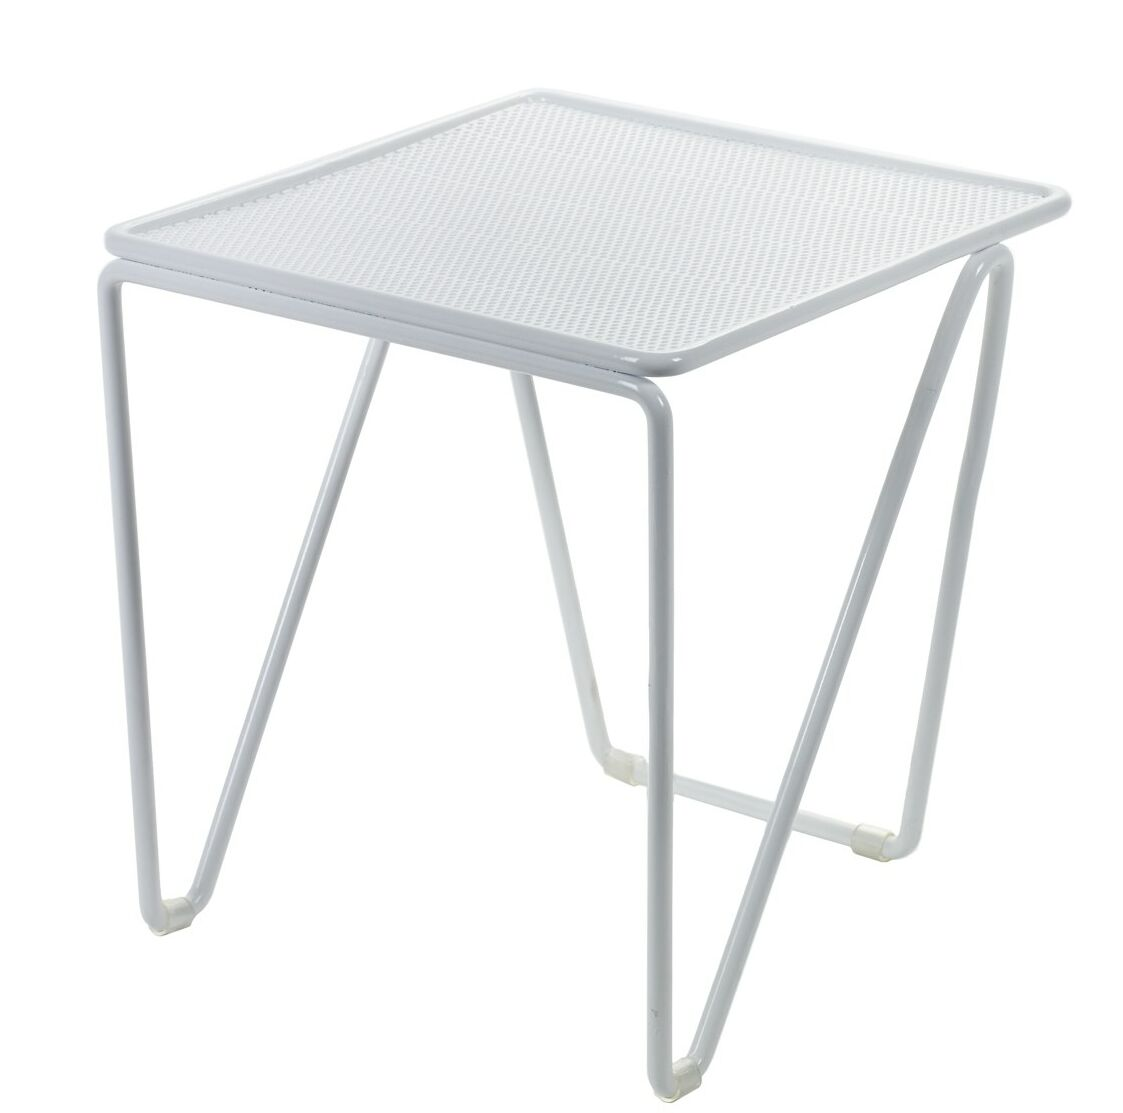 Piner Small Steel End Table